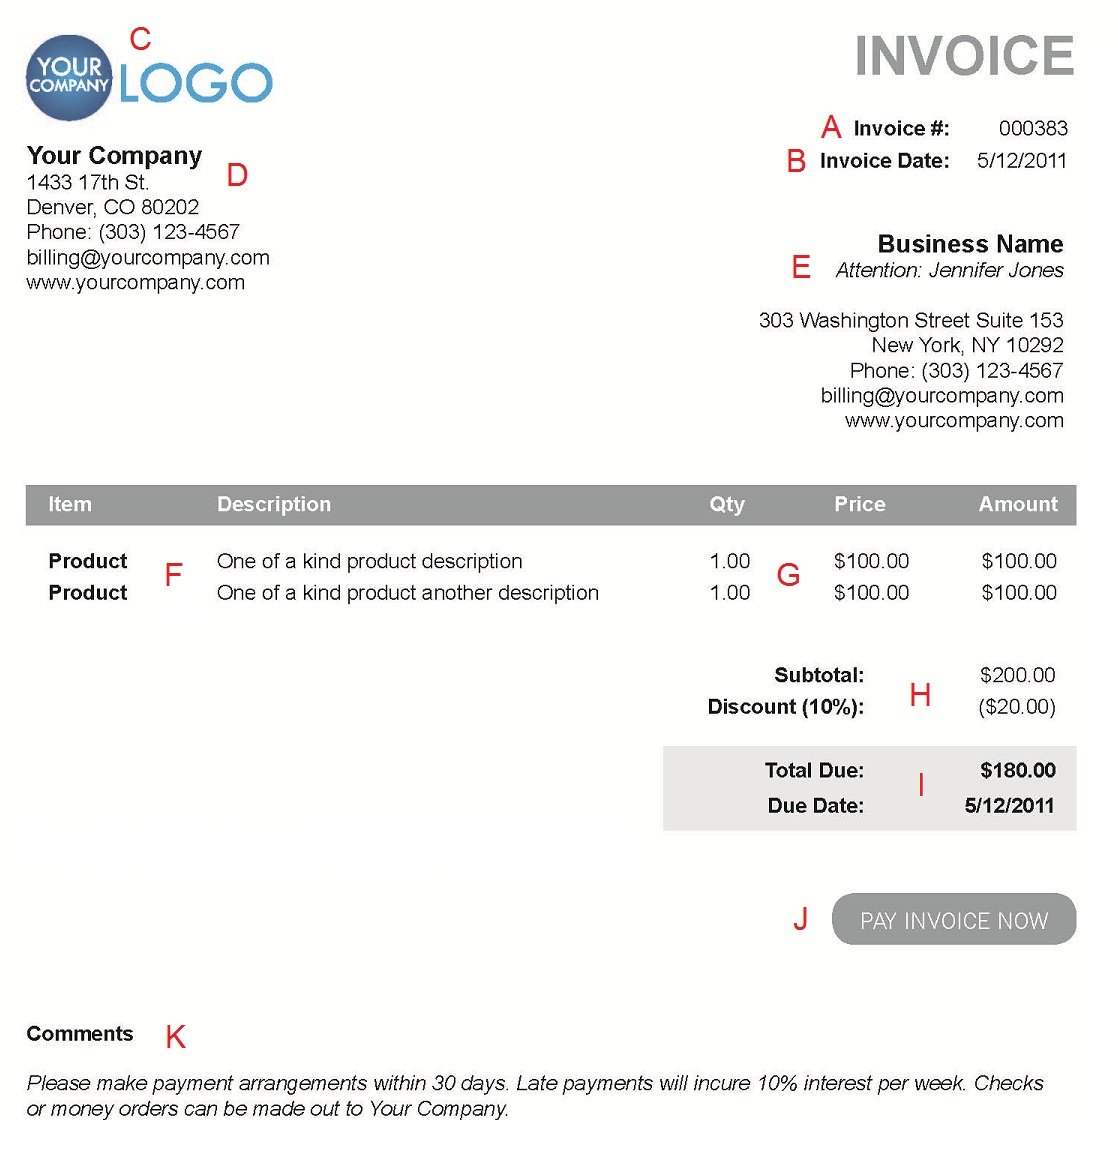 Floobydustus  Unusual The  Different Sections Of An Electronic Payment Invoice With Luxury A  With Amusing Invoice Wiki Also Microsoft Office Invoice In Addition Best Invoice Software For Small Business And Invoice Automation Software As Well As Invoice For Mac Additionally Acura Tlx Invoice Price From Paysimplecom With Floobydustus  Luxury The  Different Sections Of An Electronic Payment Invoice With Amusing A  And Unusual Invoice Wiki Also Microsoft Office Invoice In Addition Best Invoice Software For Small Business From Paysimplecom